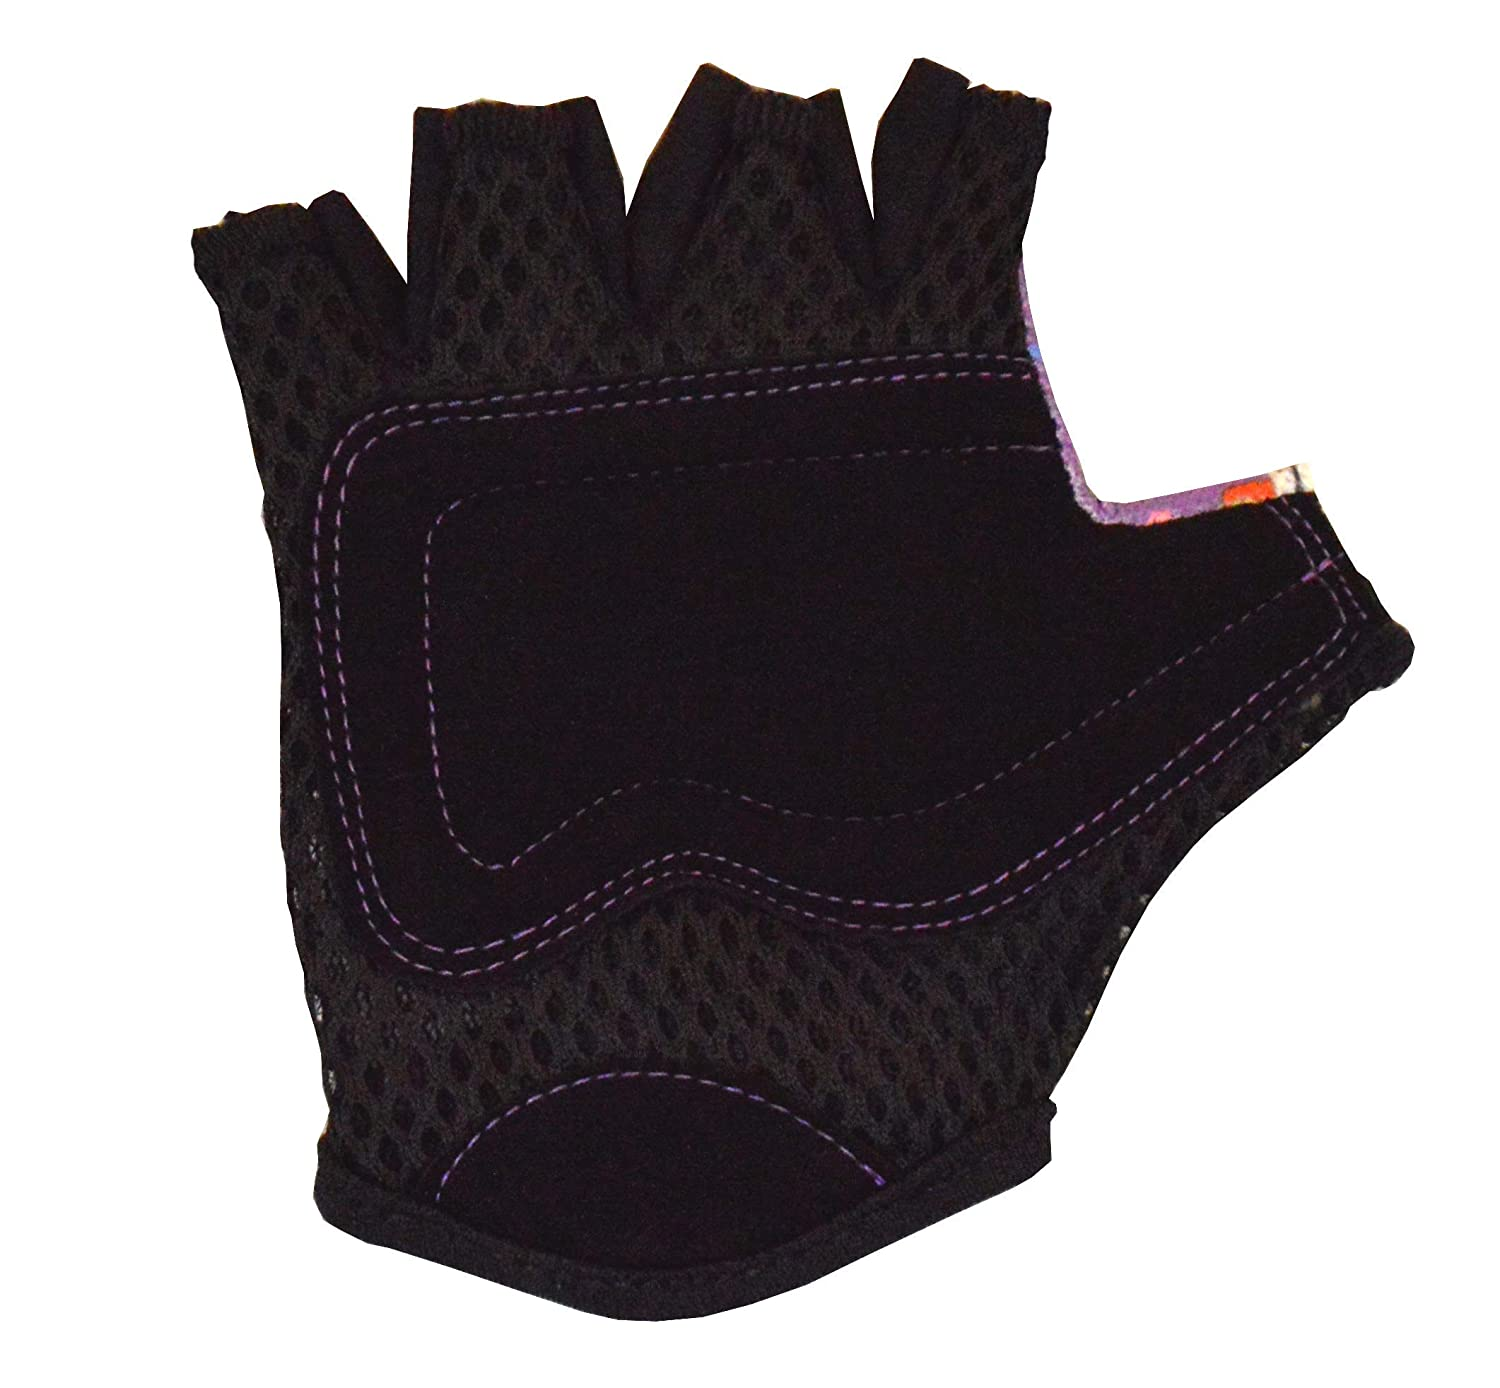 Fingerless Gloves for Kids Scooter /& Skateboard Ideal for Boys and Girls Kiddimoto Available in Different Colourful Designs /& Sizes Cycling Gloves Perfect for Bike